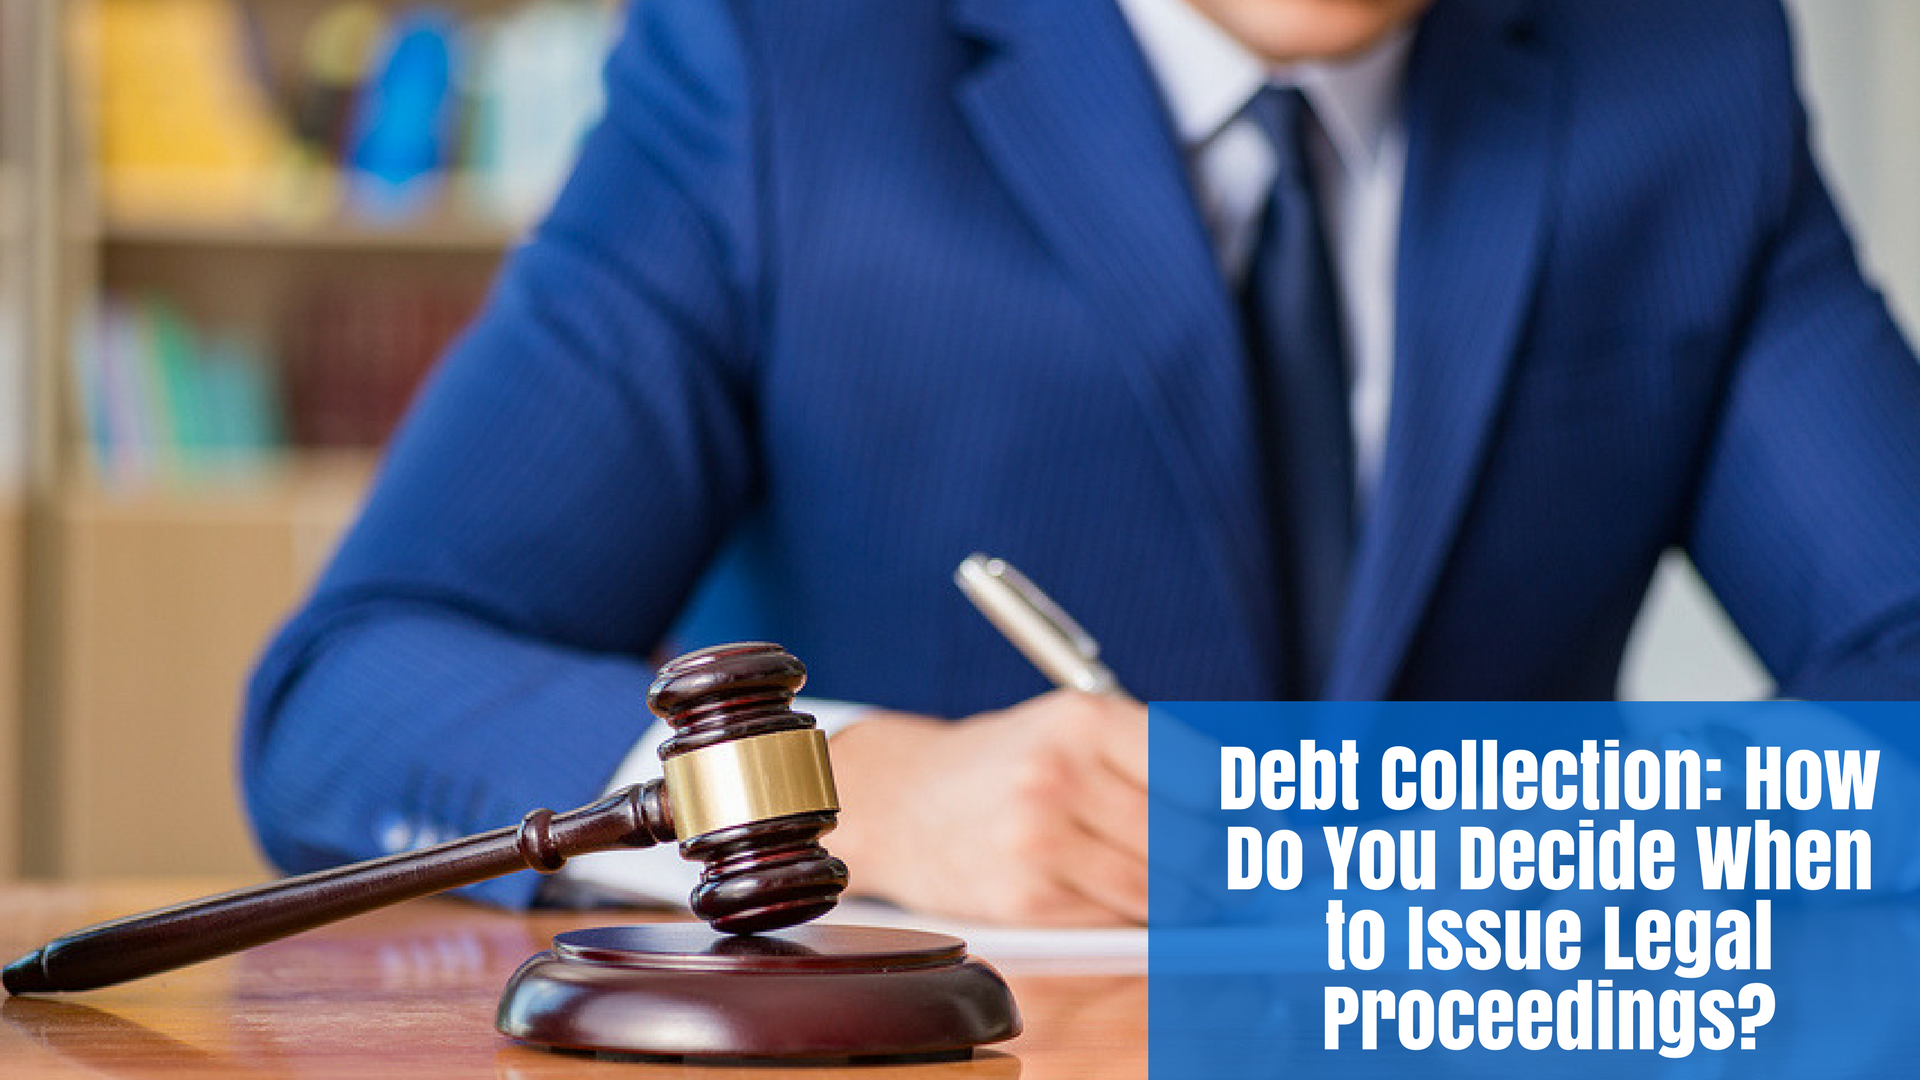 Debt Collection: How Do You Decide When to Issue Legal Proceedings?